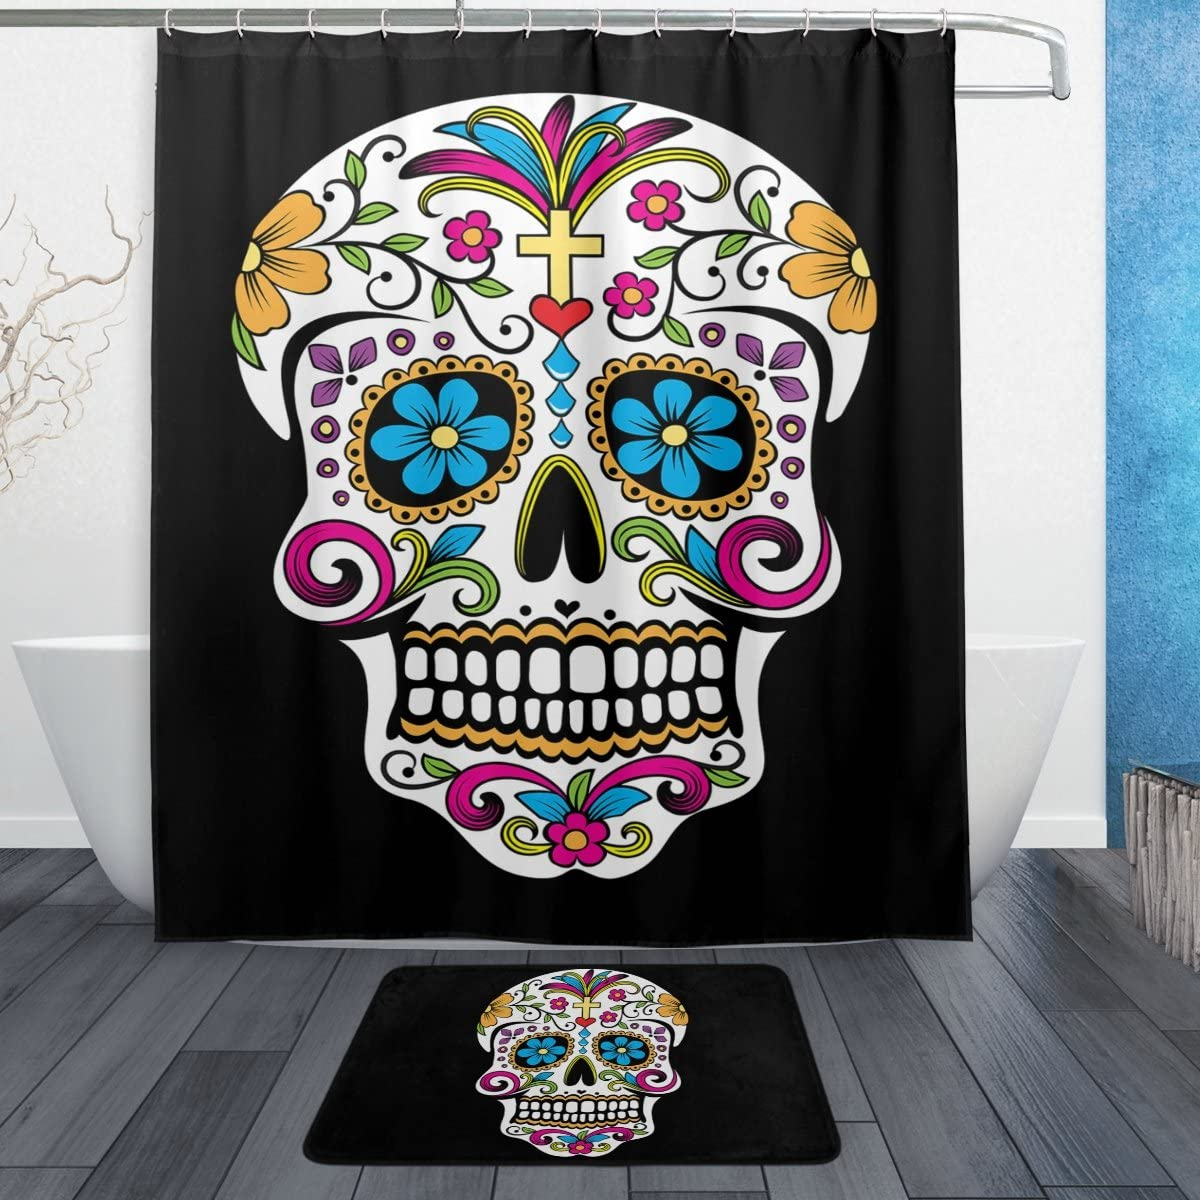 Naanle Fantastic Floral Sugar Skulls Day of The Dead Decor Waterproof Polyester Fabric Shower Curtain (60